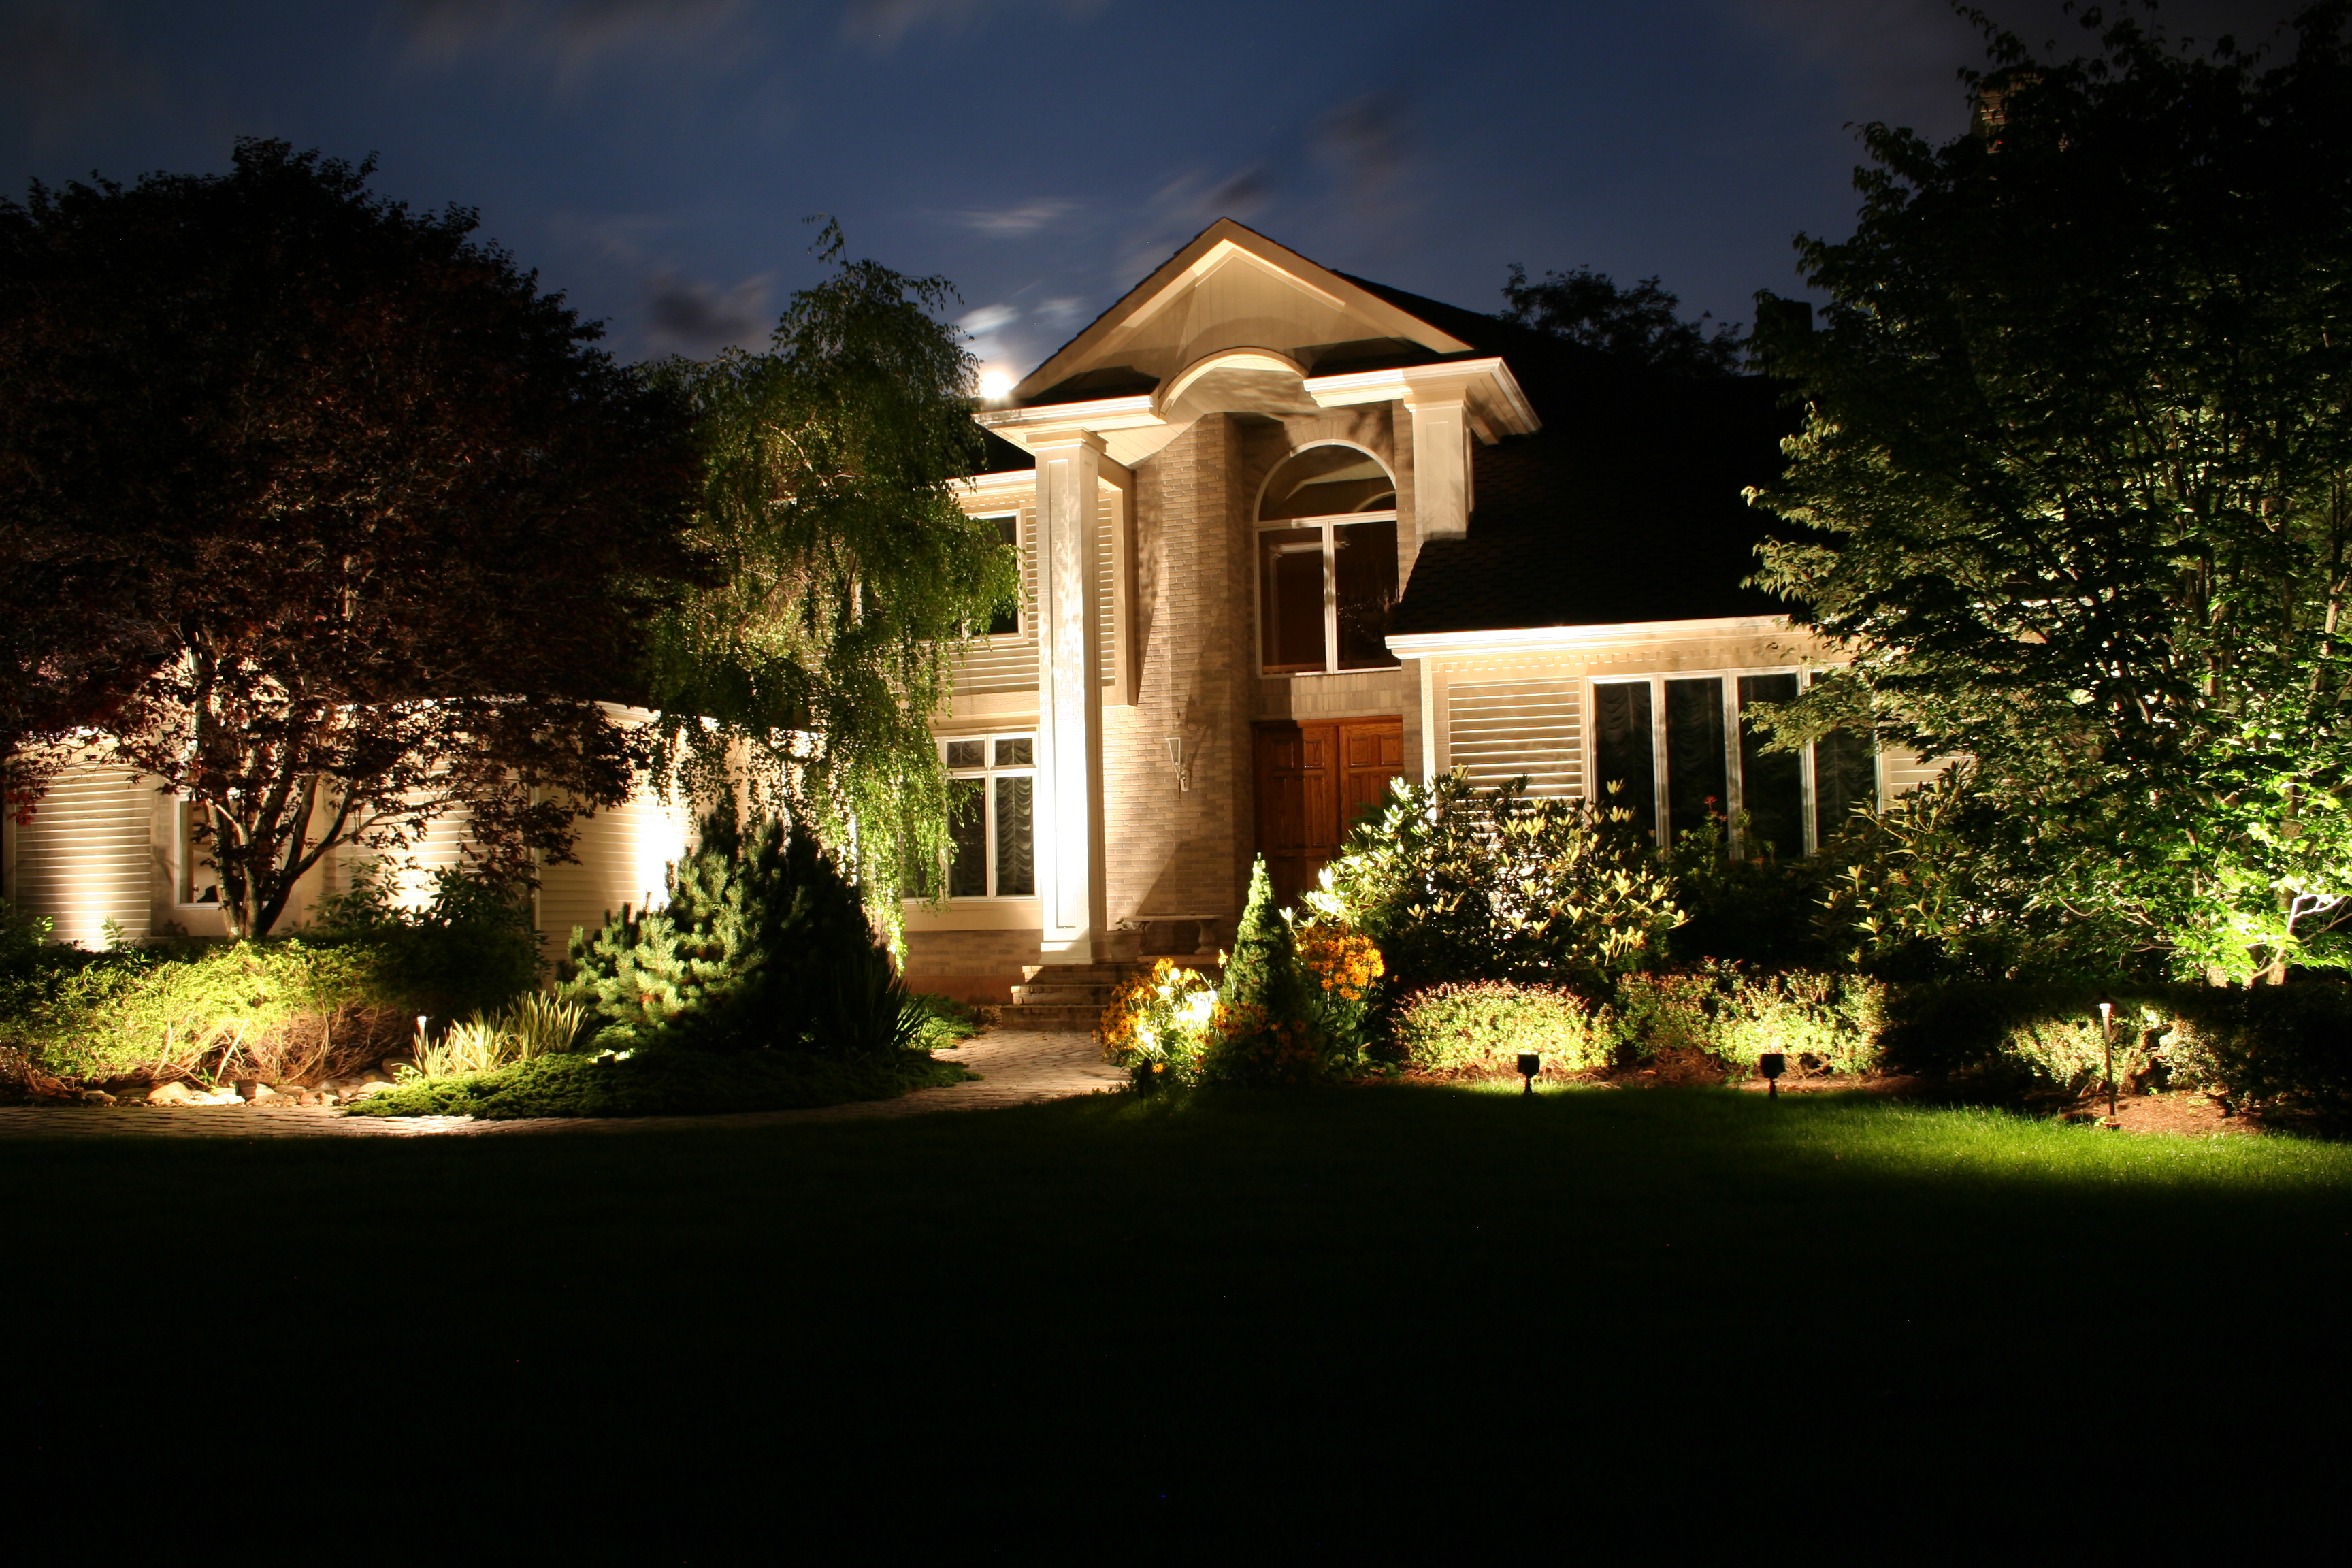 Emejing Landscape Lighting Ideas Design Pictures - Interior Design ...